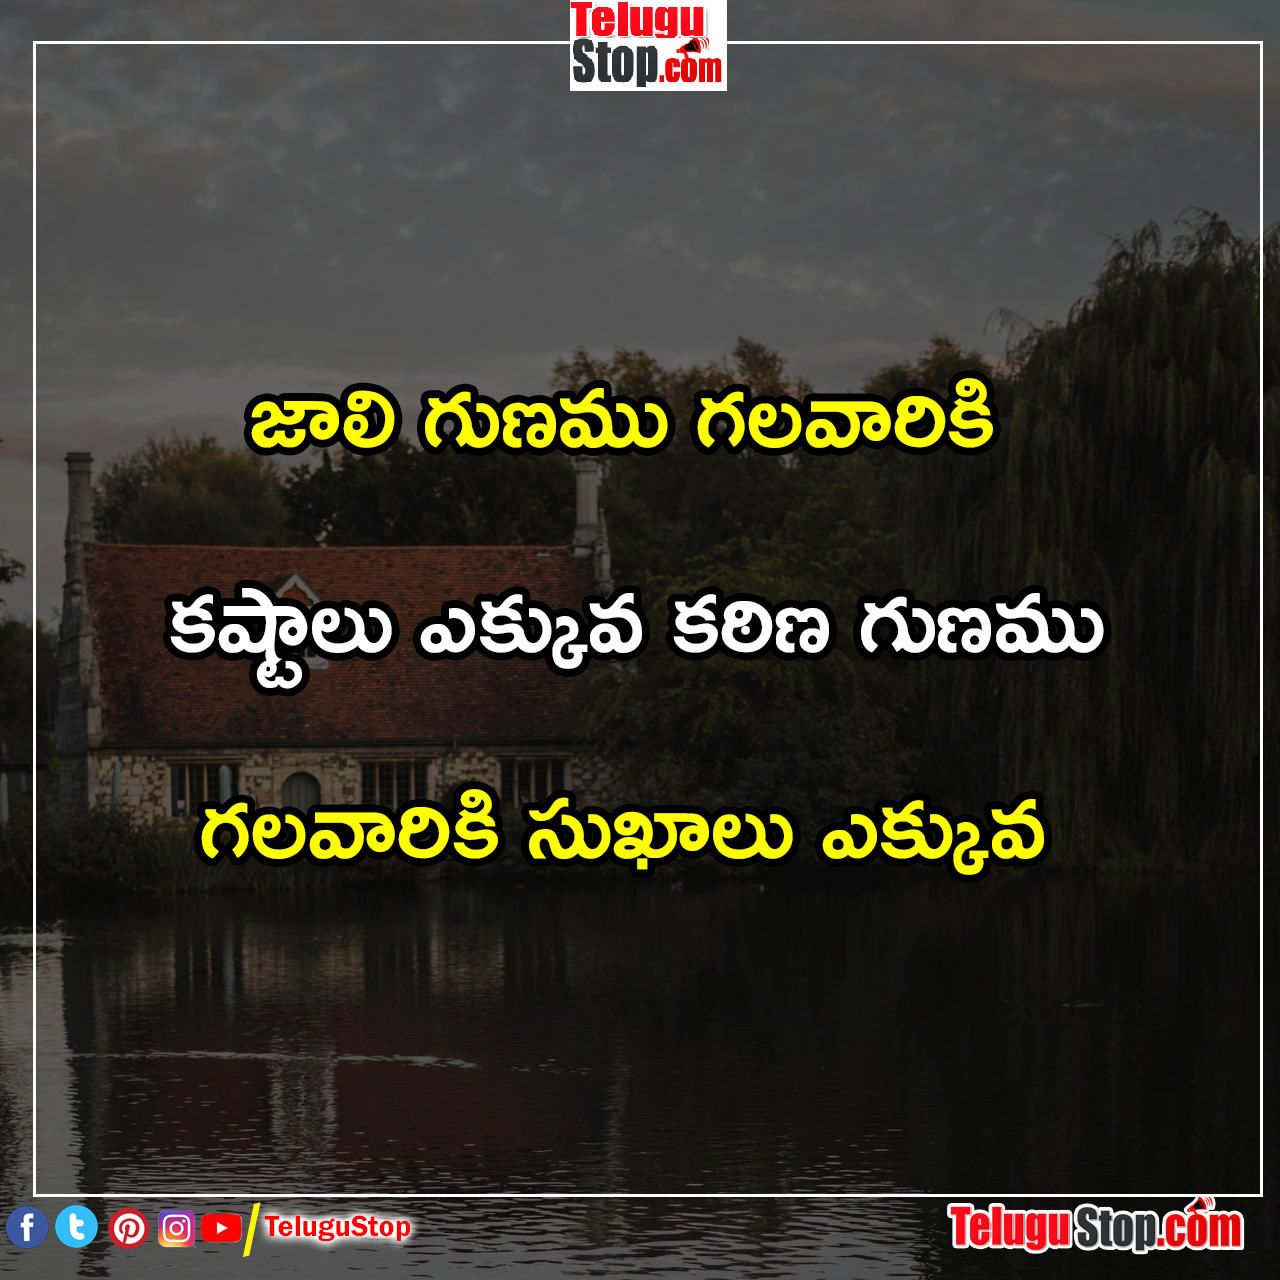 human life cycle quotes in telugu Inspirational Quote